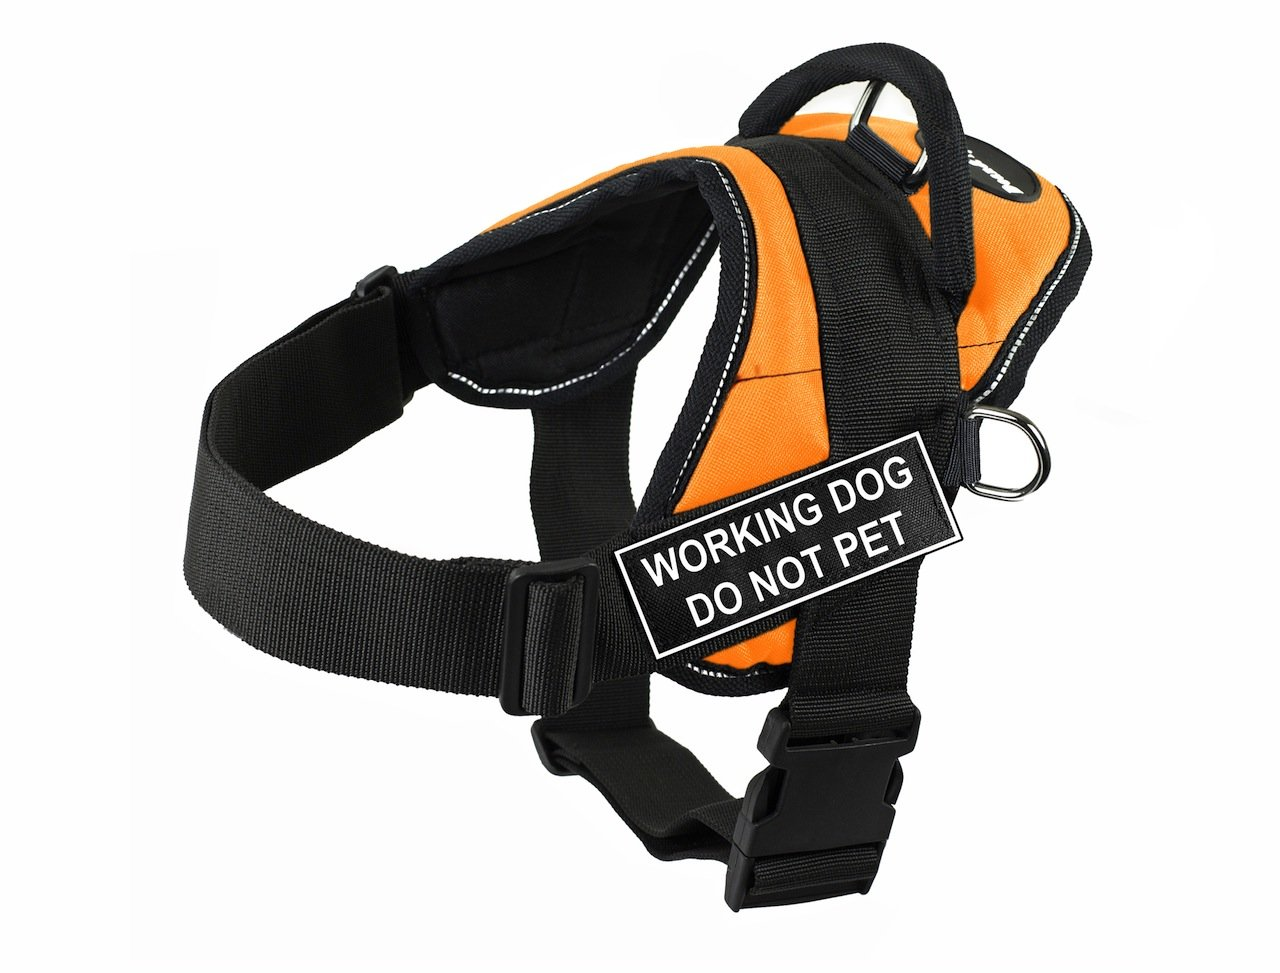 Dean & Tyler DT Fun Working Dog Do Not Pet  Harness with Reflective Trim, X-Small, orange